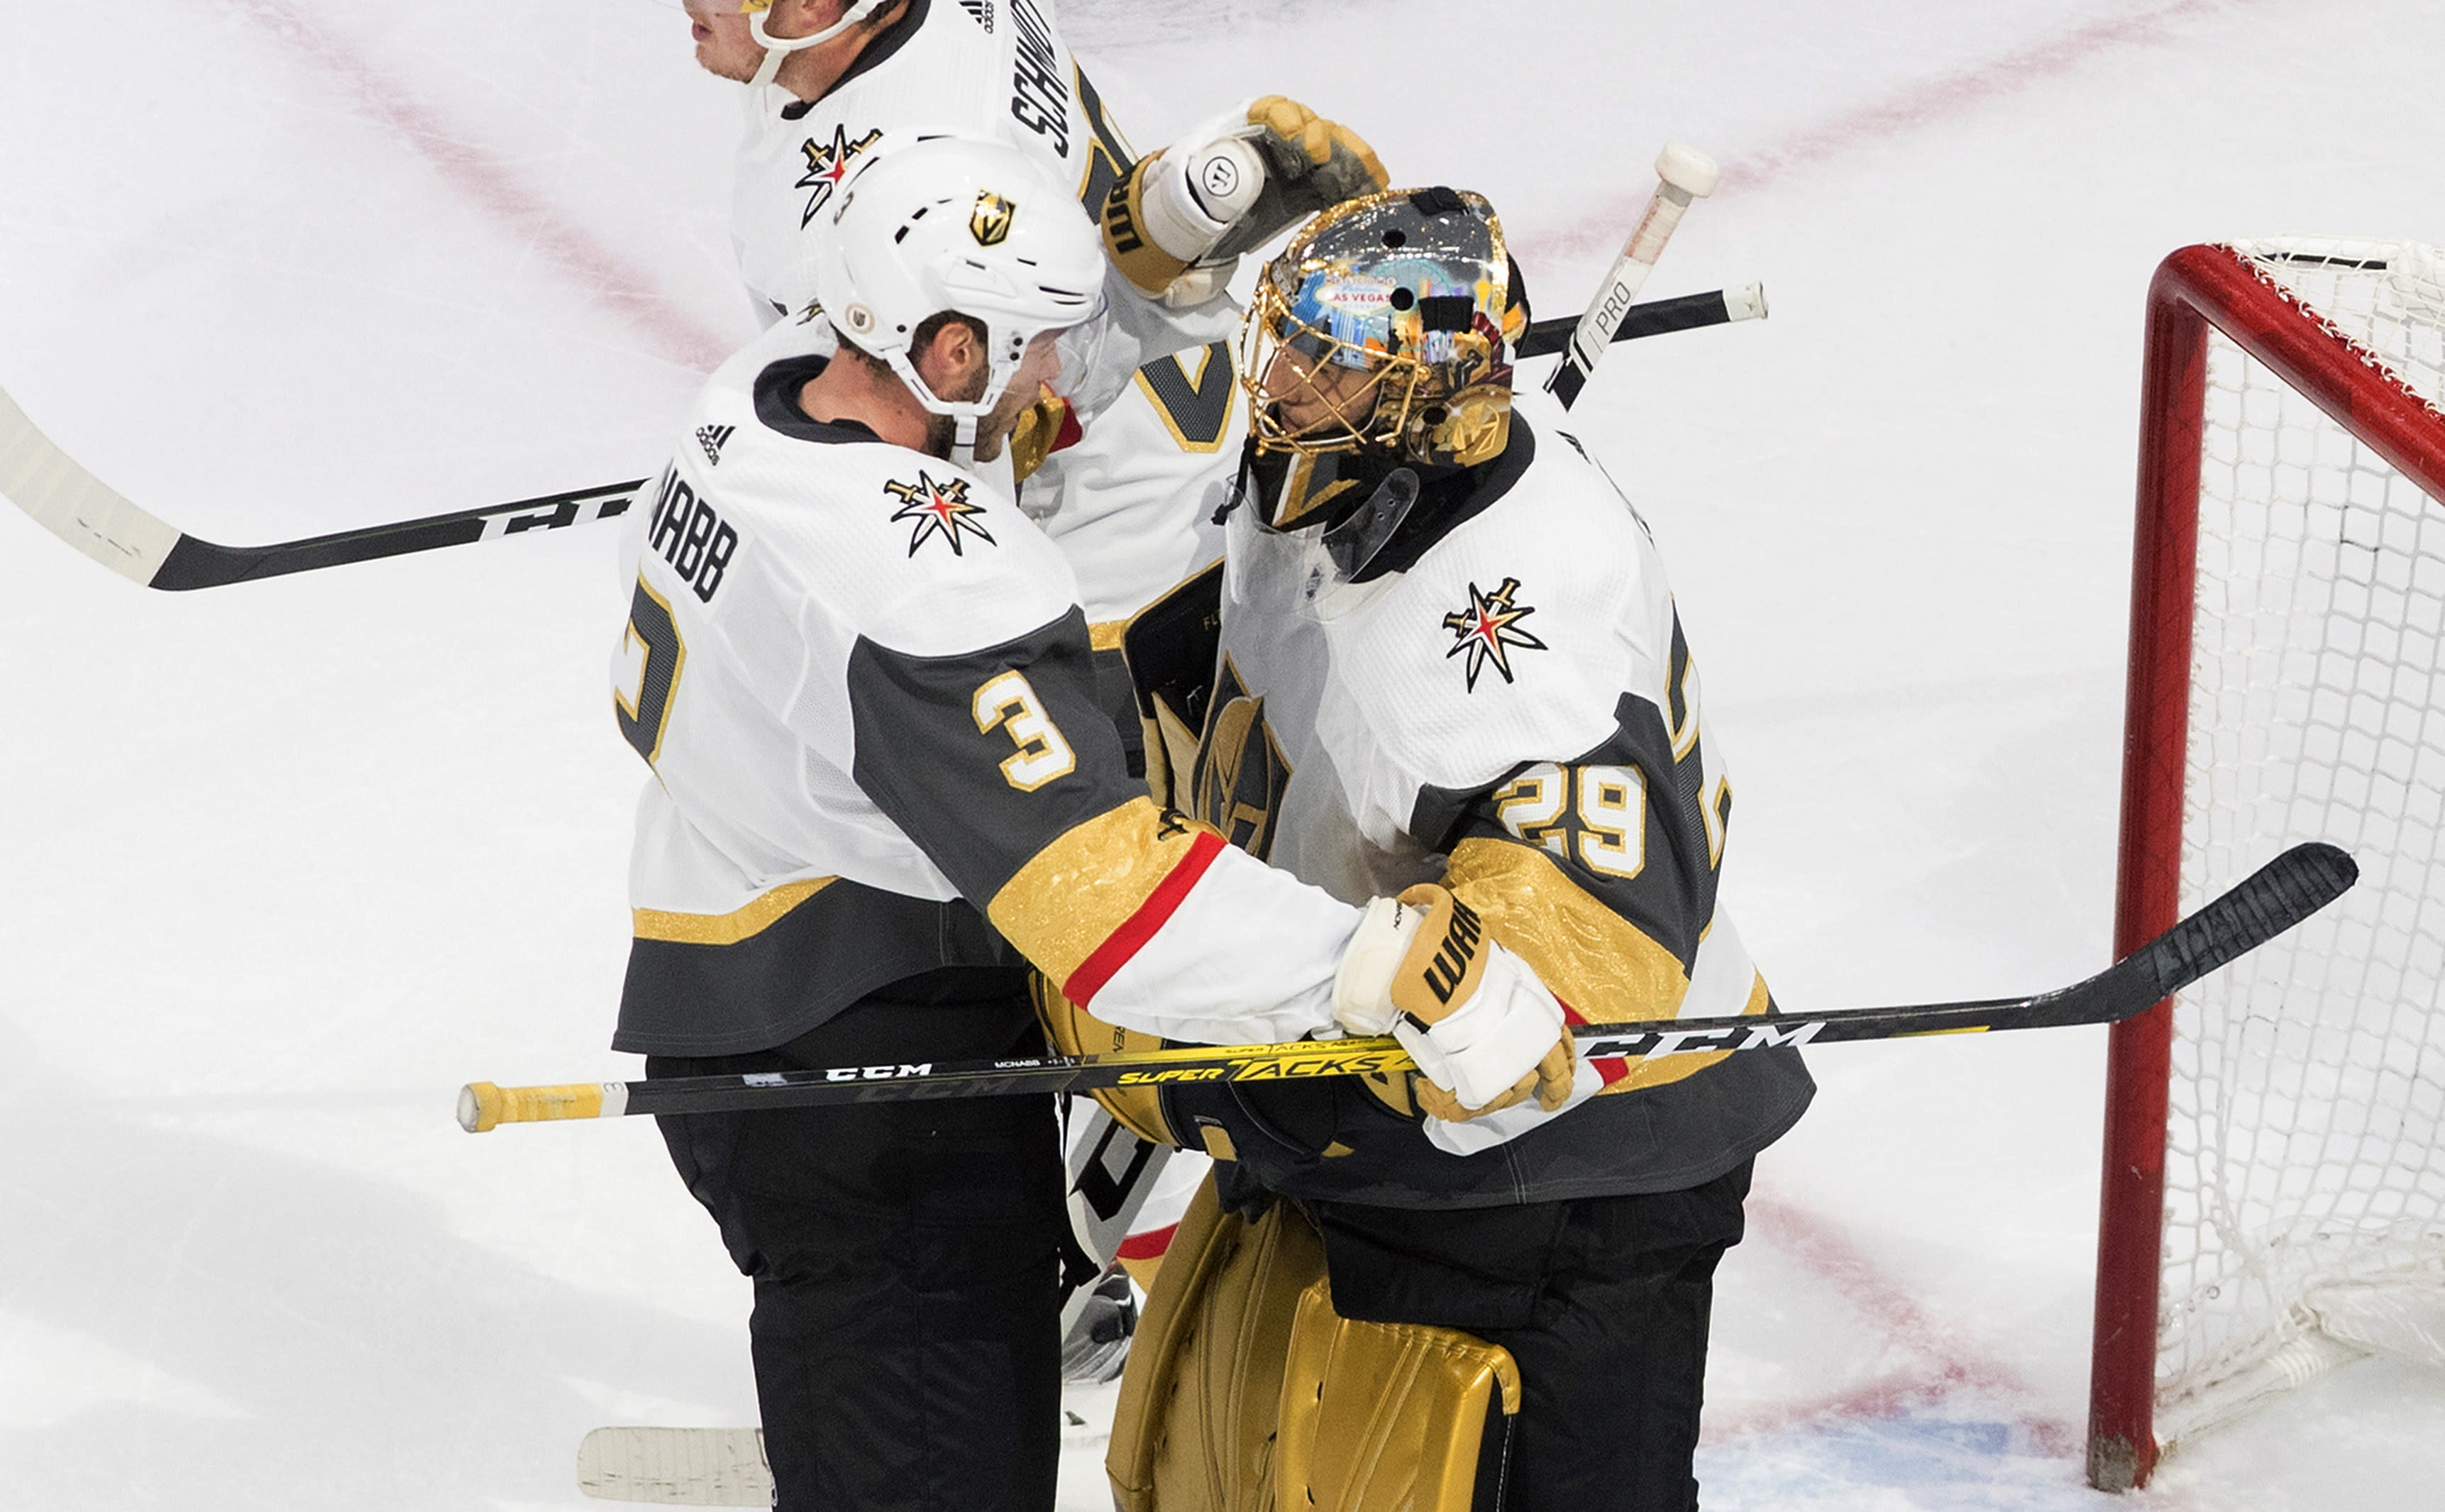 Marc-Andre Fleury's agent tweets image hinting disapproval of Robin Lehner starting